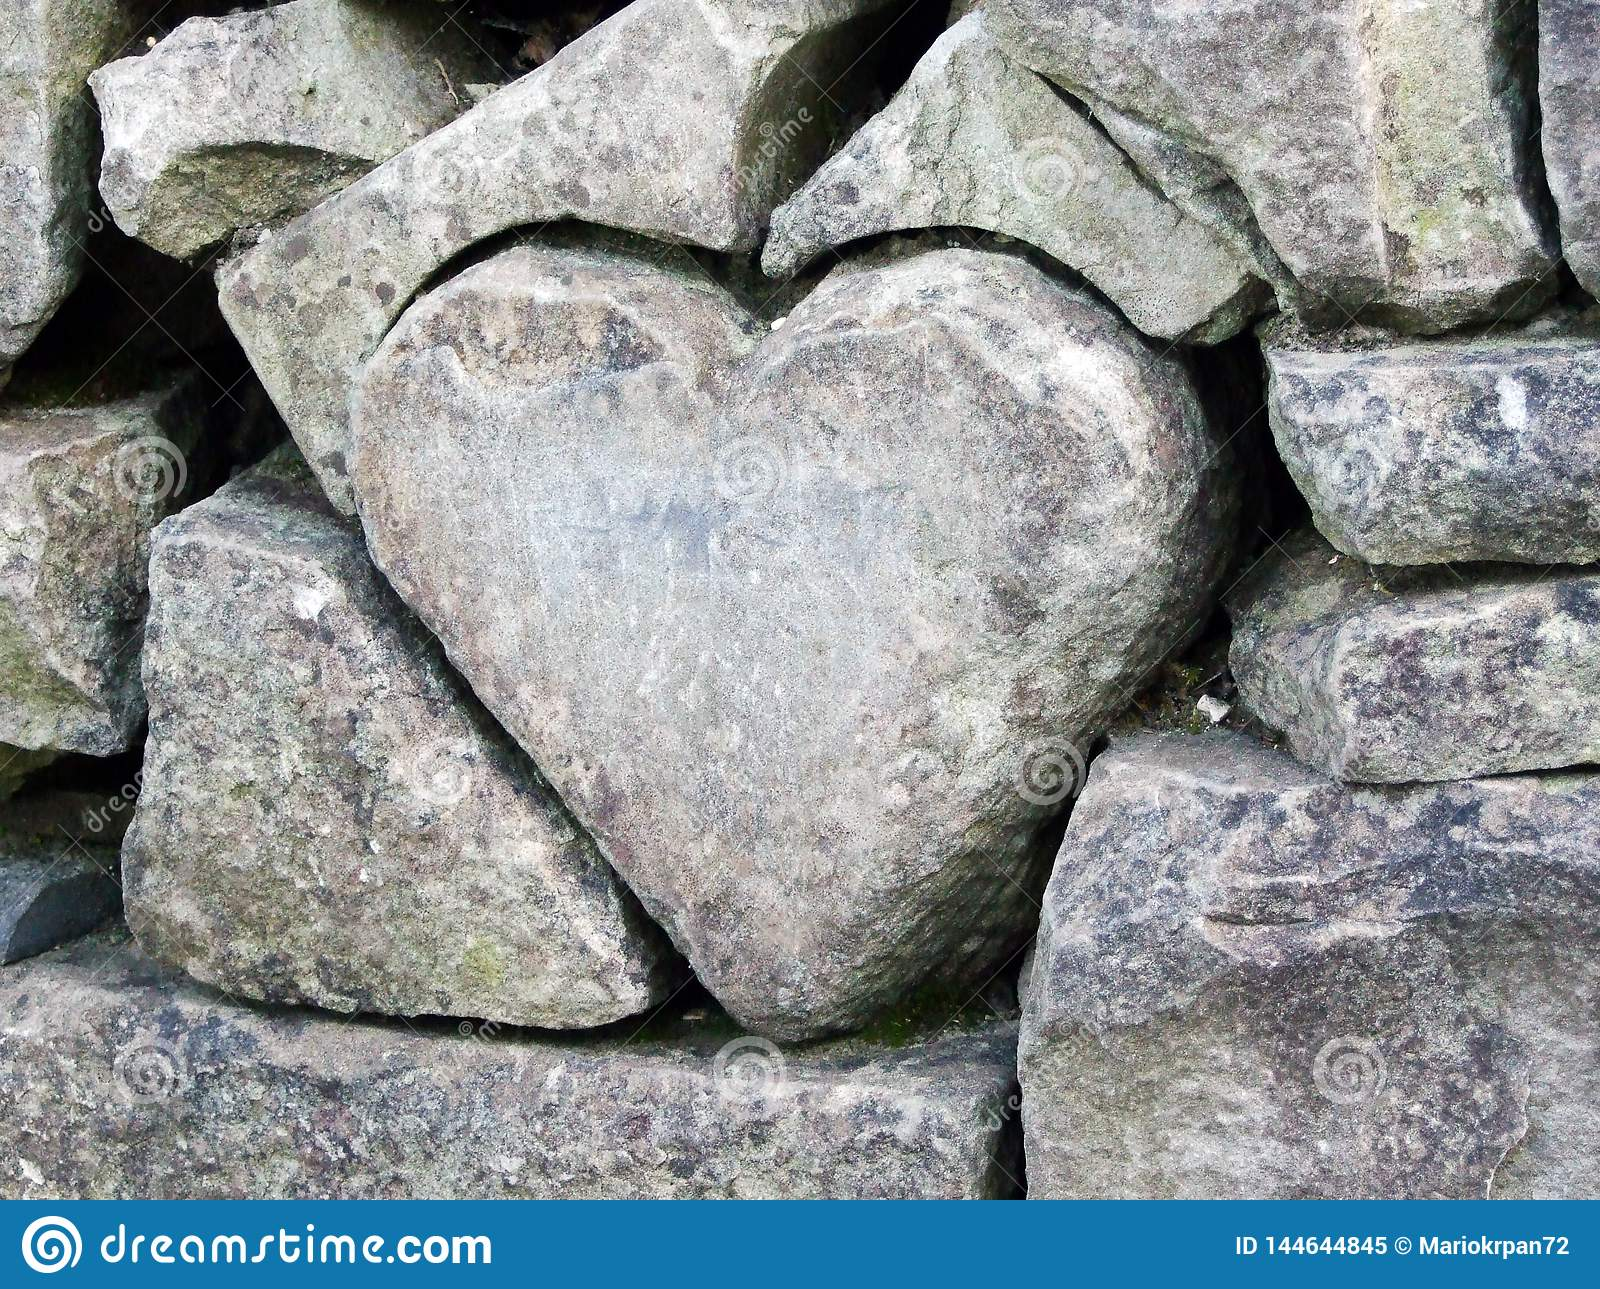 Pergola Gossau Carved Stone Heart In The Zoo Garden Wall Abenteurland Walter Zoo